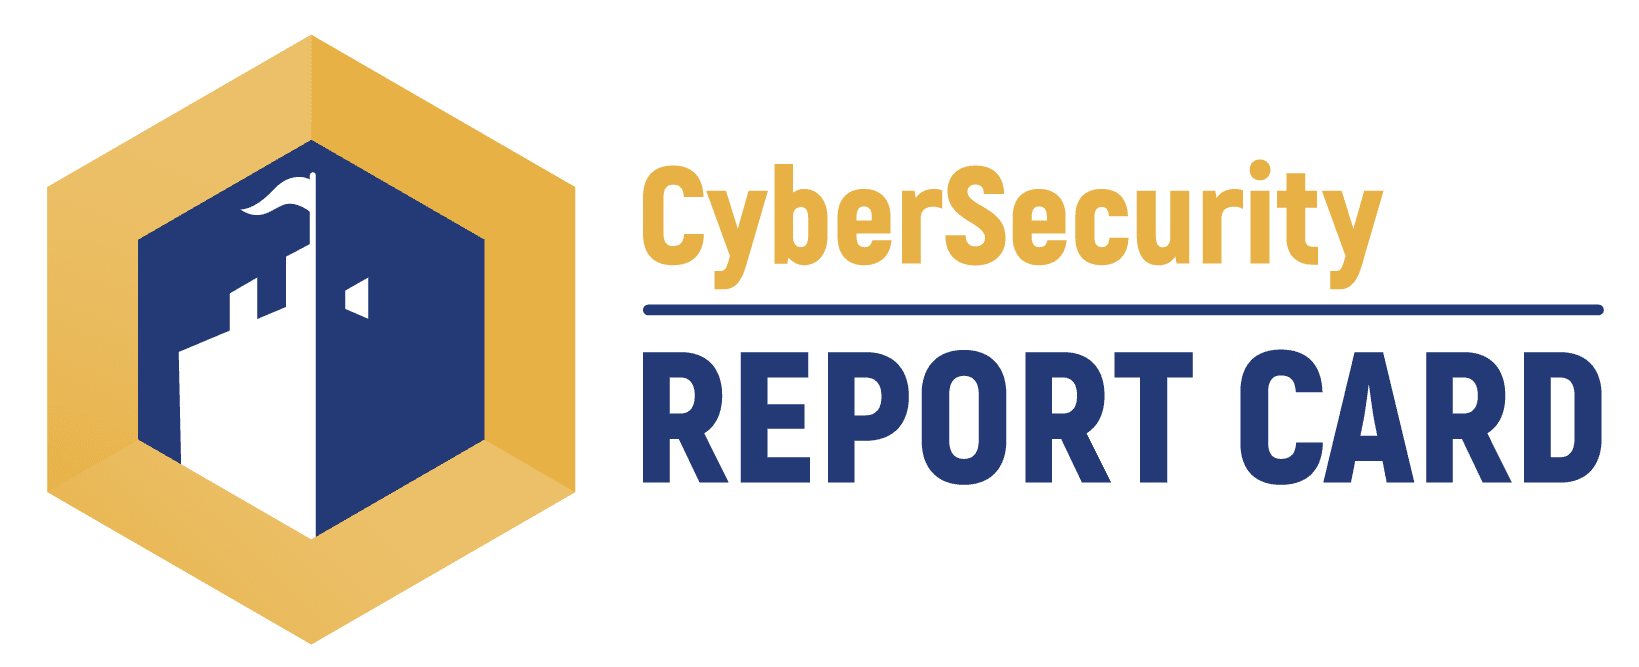 cybersecurity Report Card logo